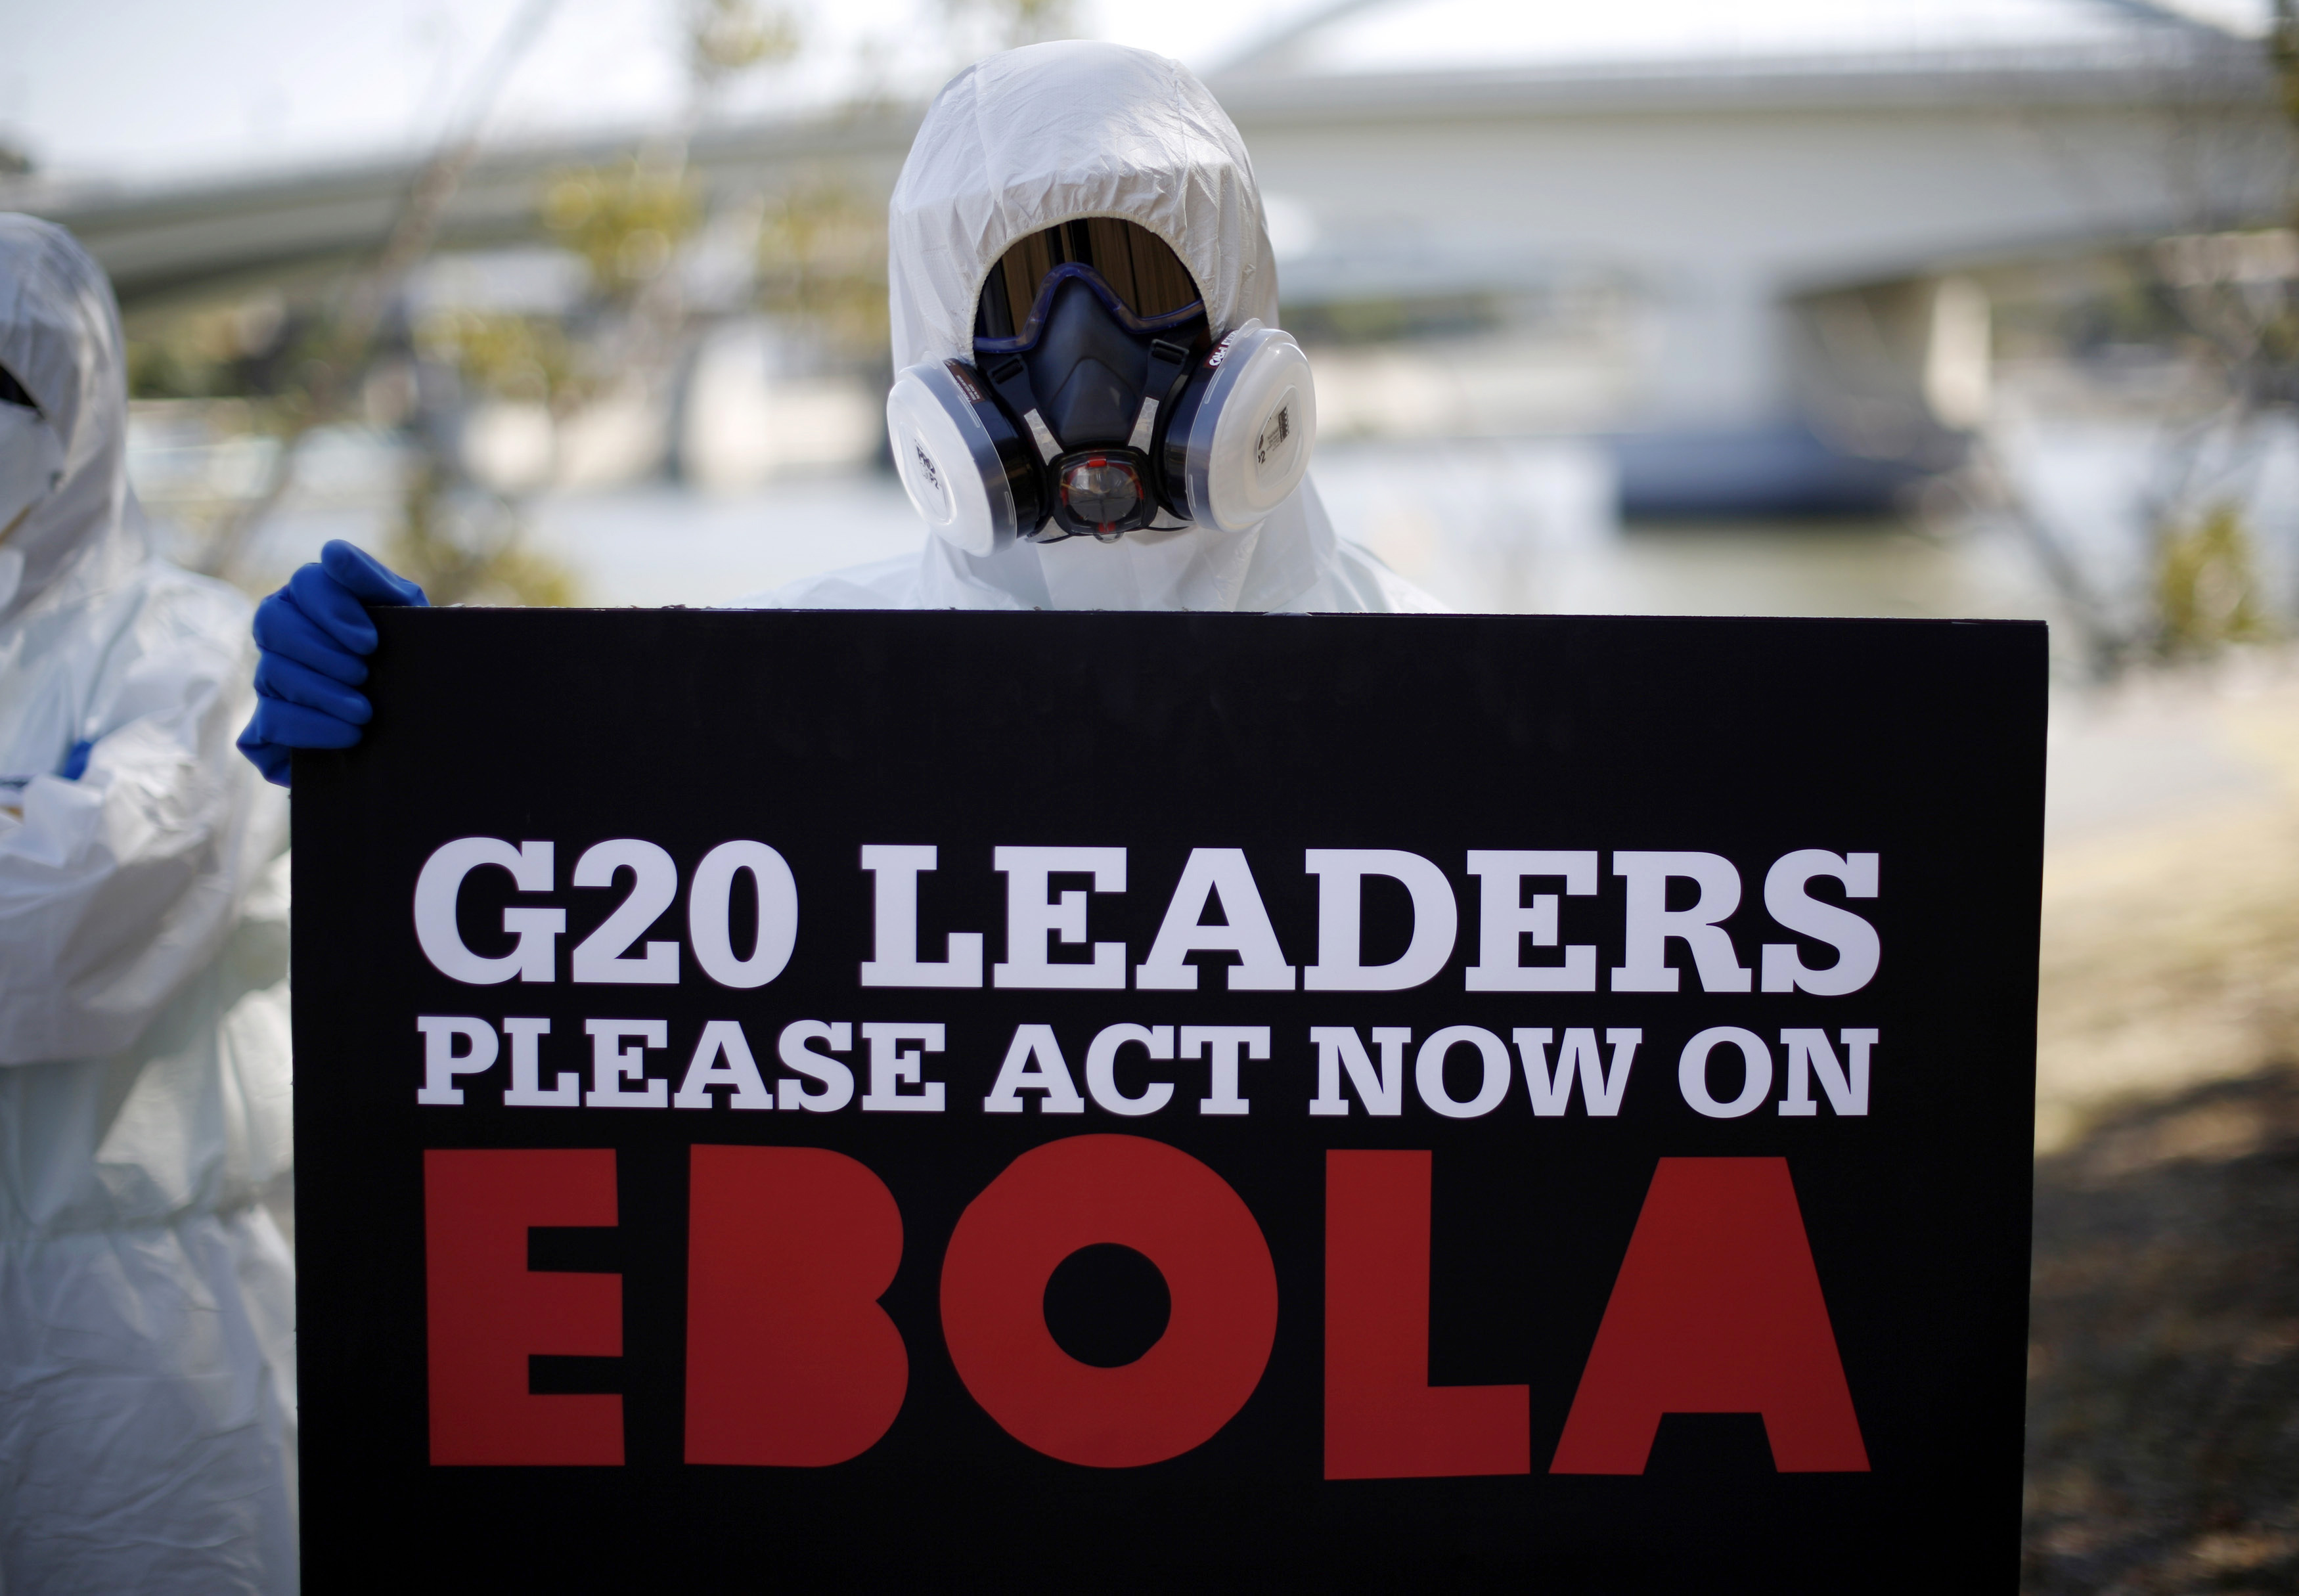 A protester dressed in protective equipment demonstrates, calling for for G20 leaders to address the Ebola issue, near the G20 leaders summit venue in Brisbane Nov. 15, 2014